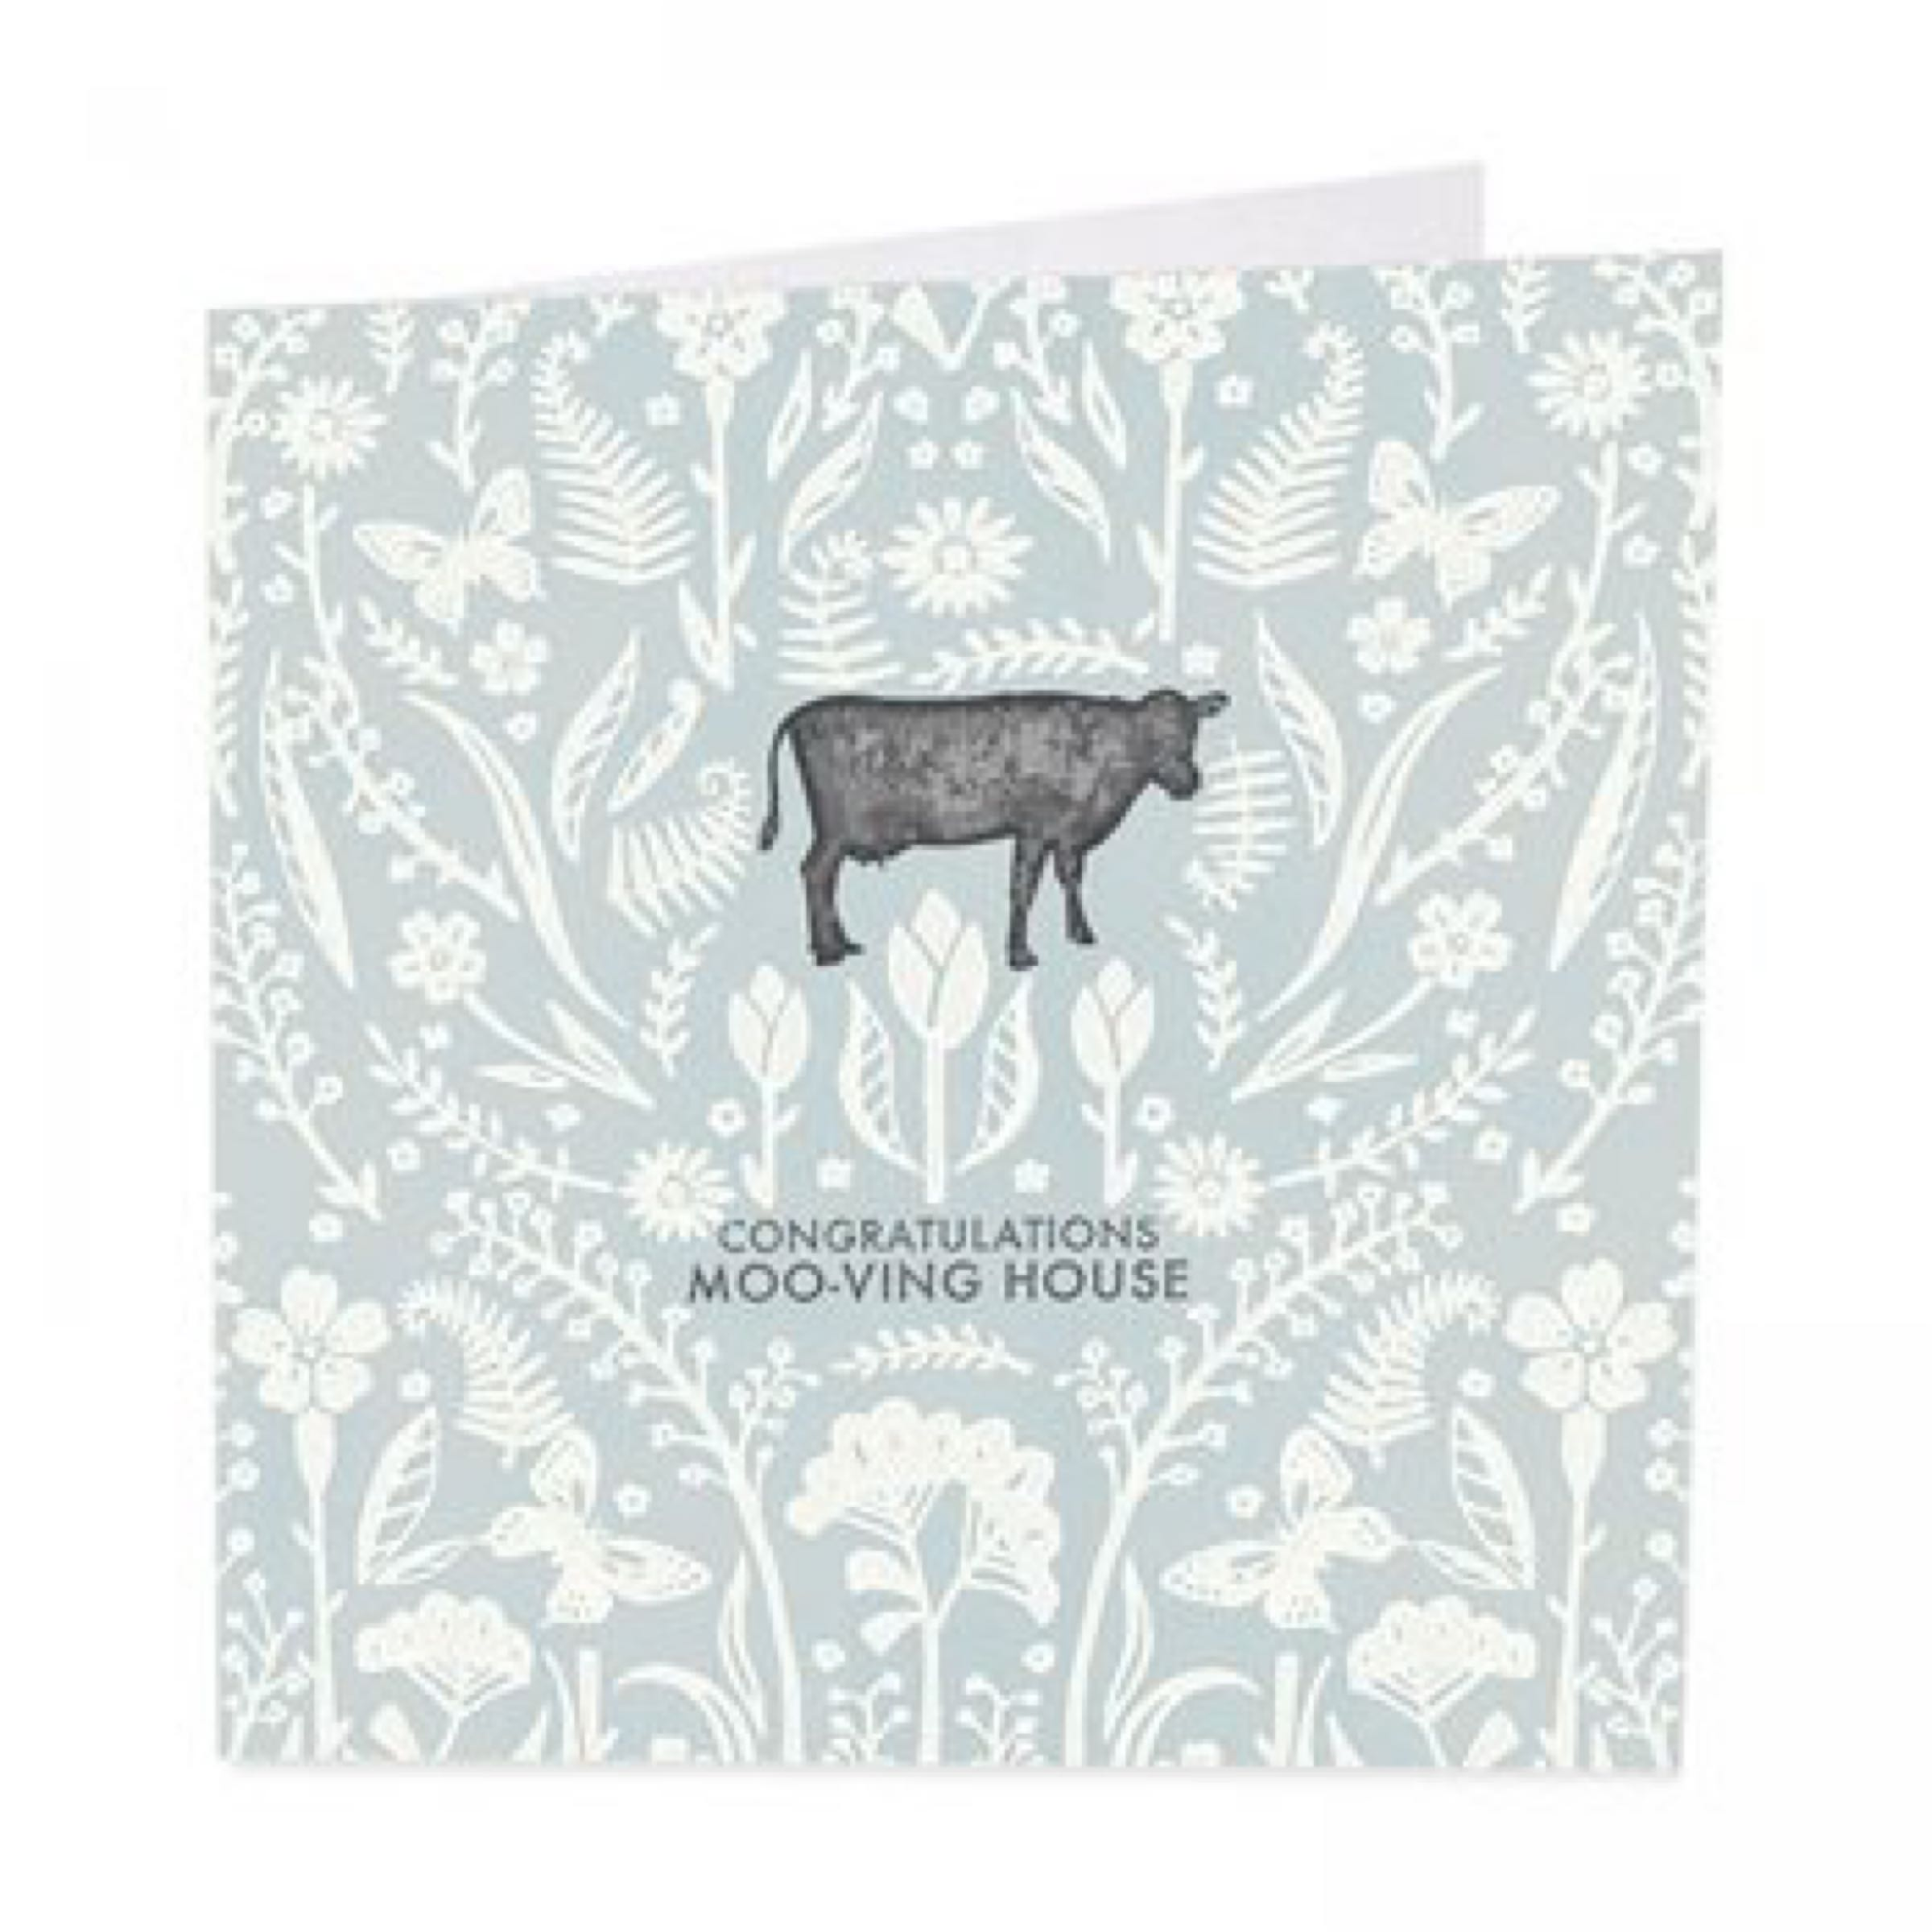 Congratulations Moo-ving house card. New home card by art beat